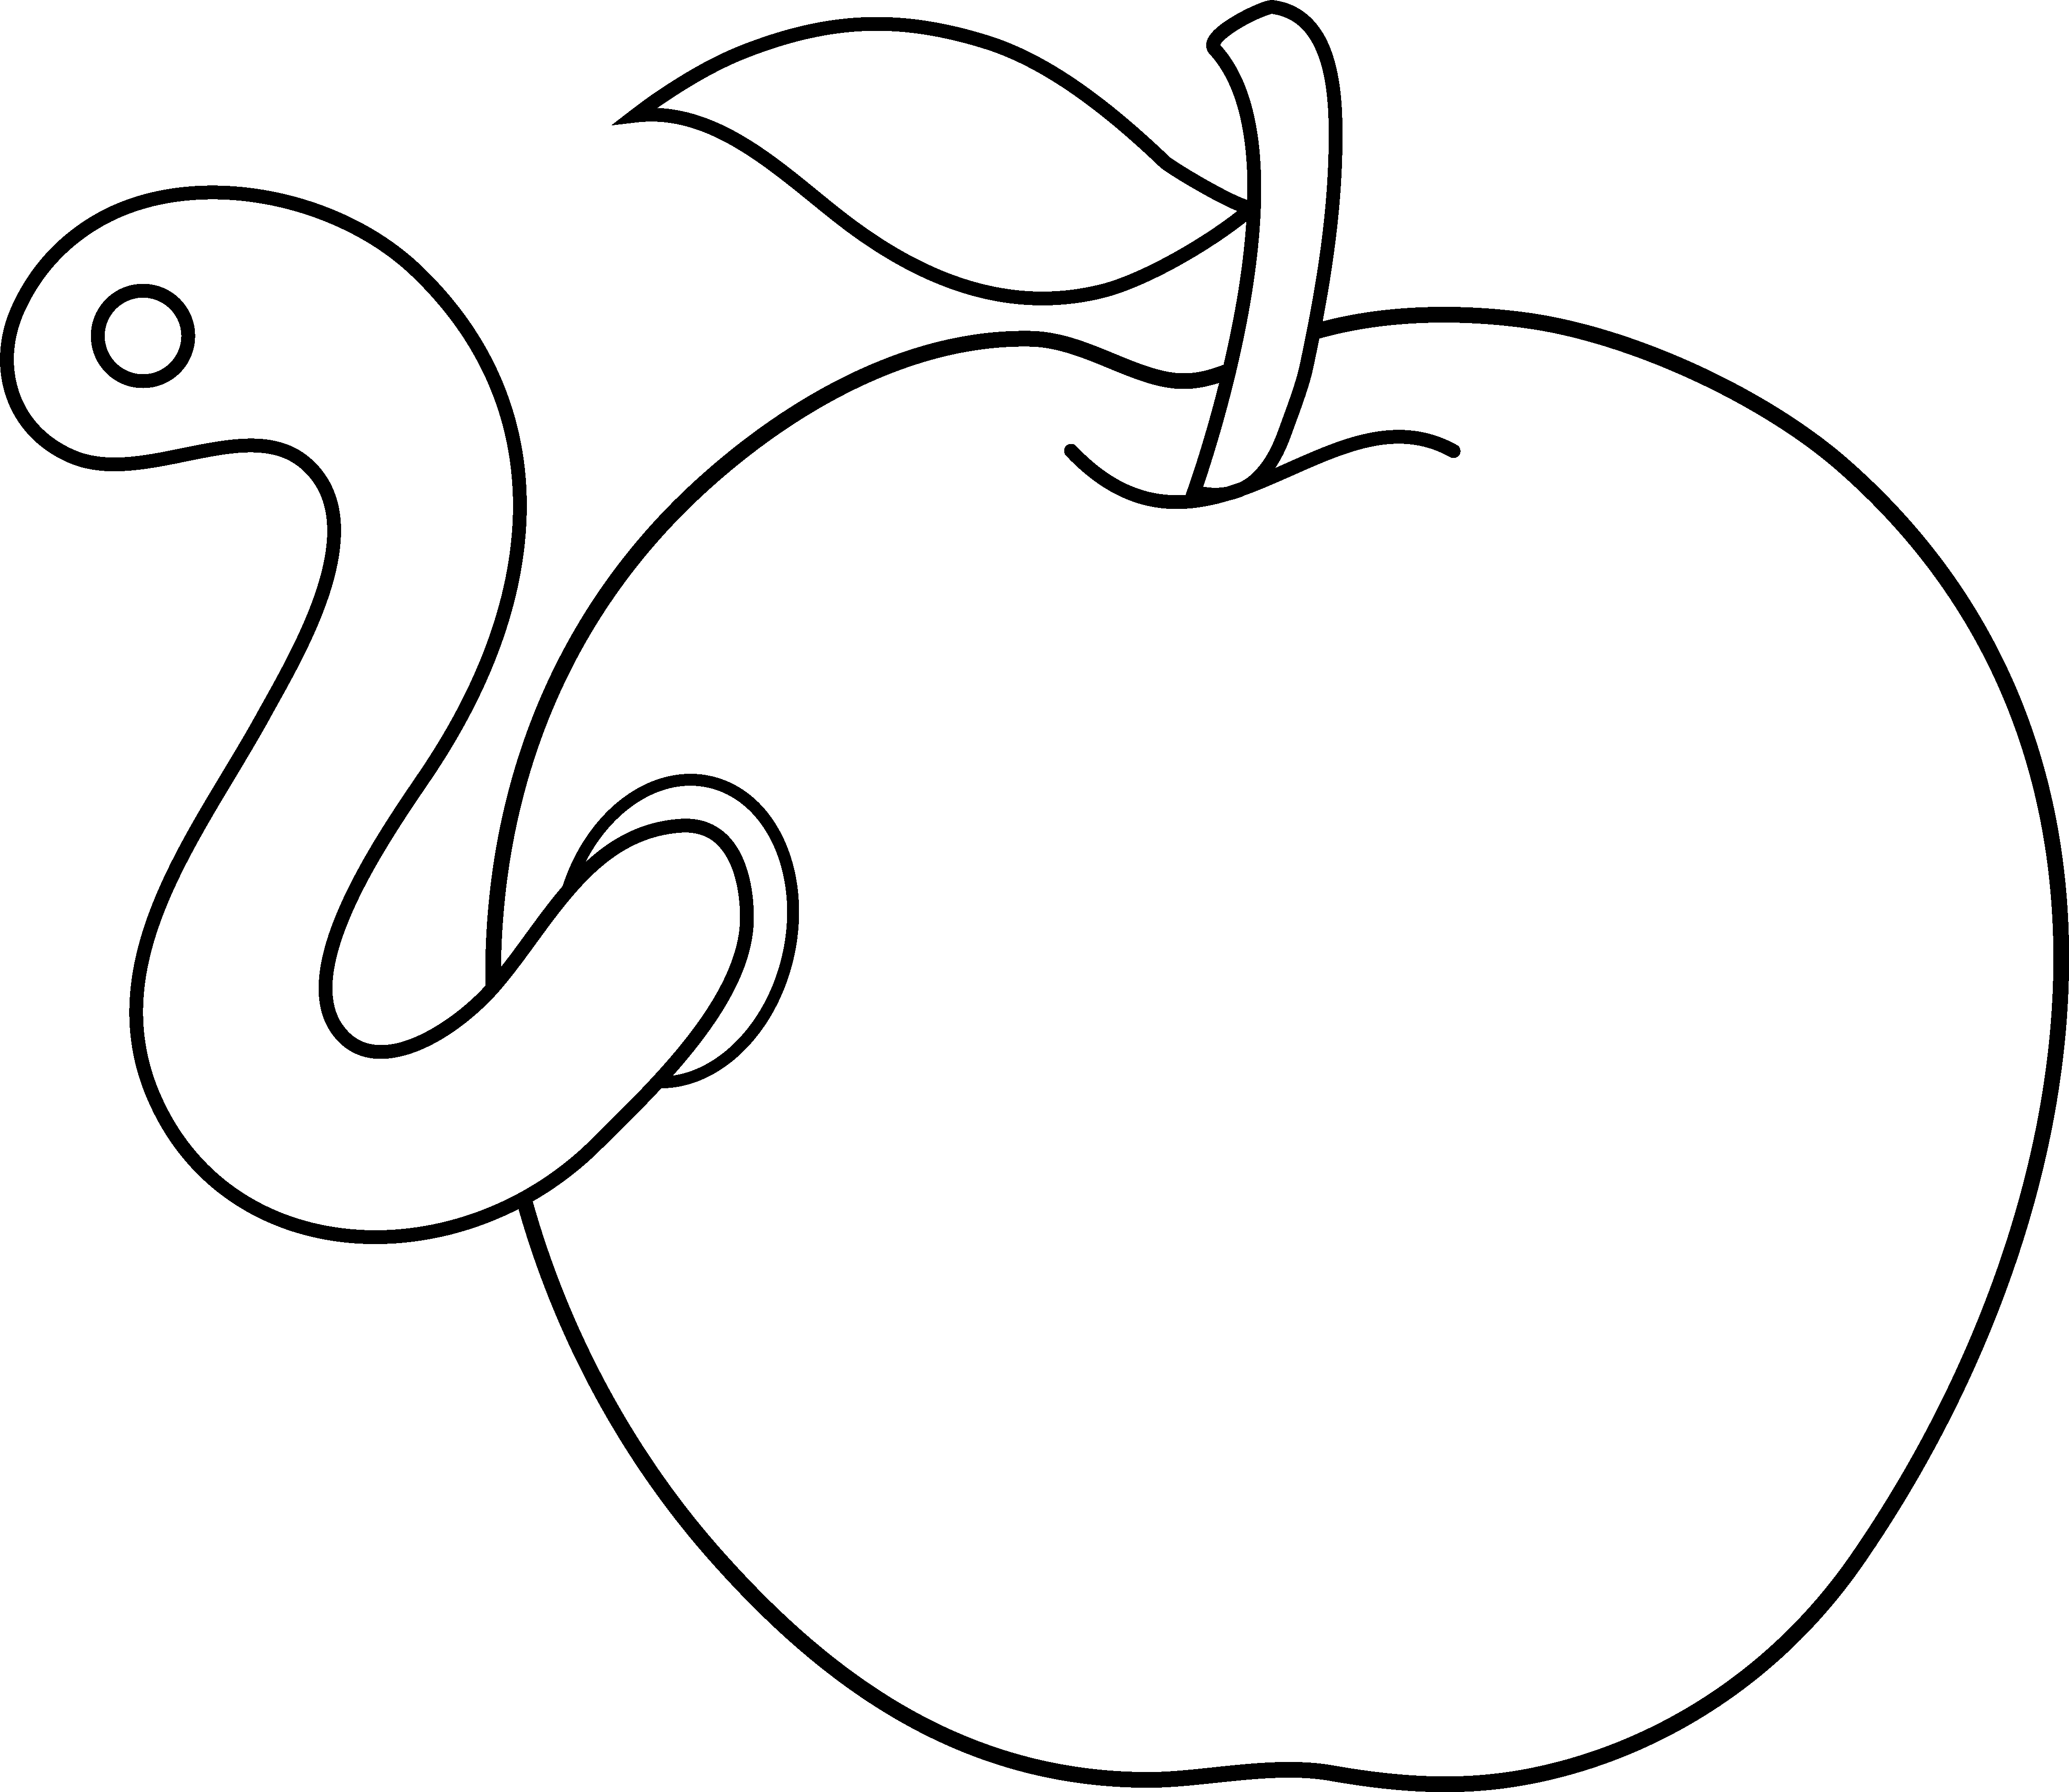 Apple core clipart black and white free graphic freeuse stock Worm in Apple Coloring Page - Free Clip Art graphic freeuse stock